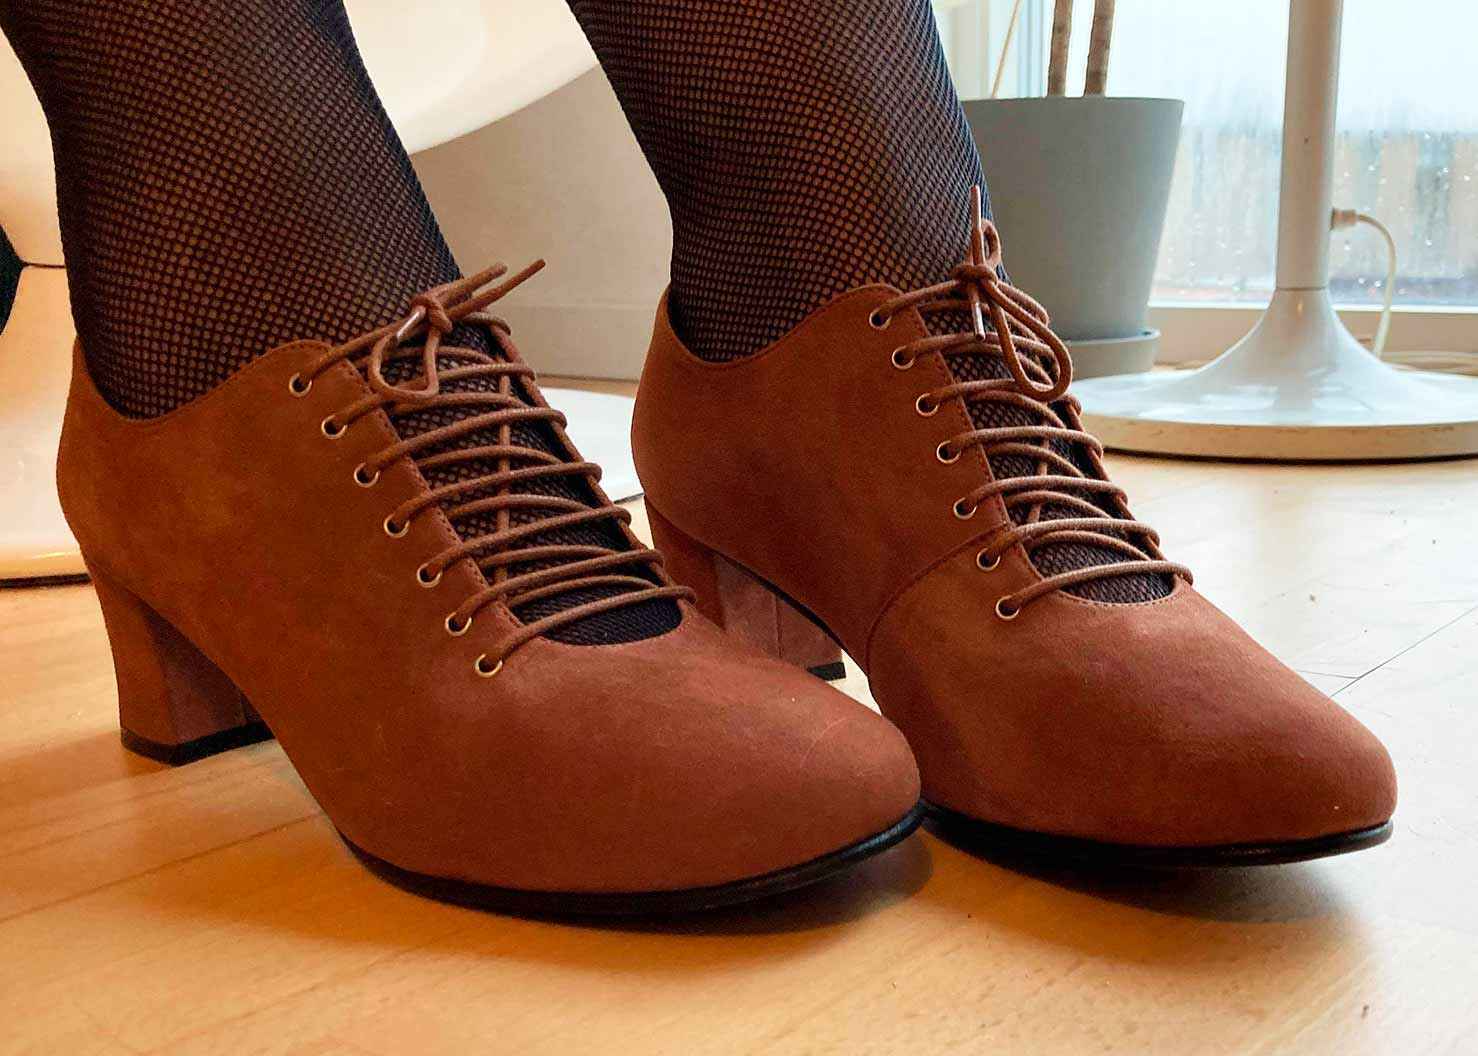 Frida lace-up shoes in brown suede